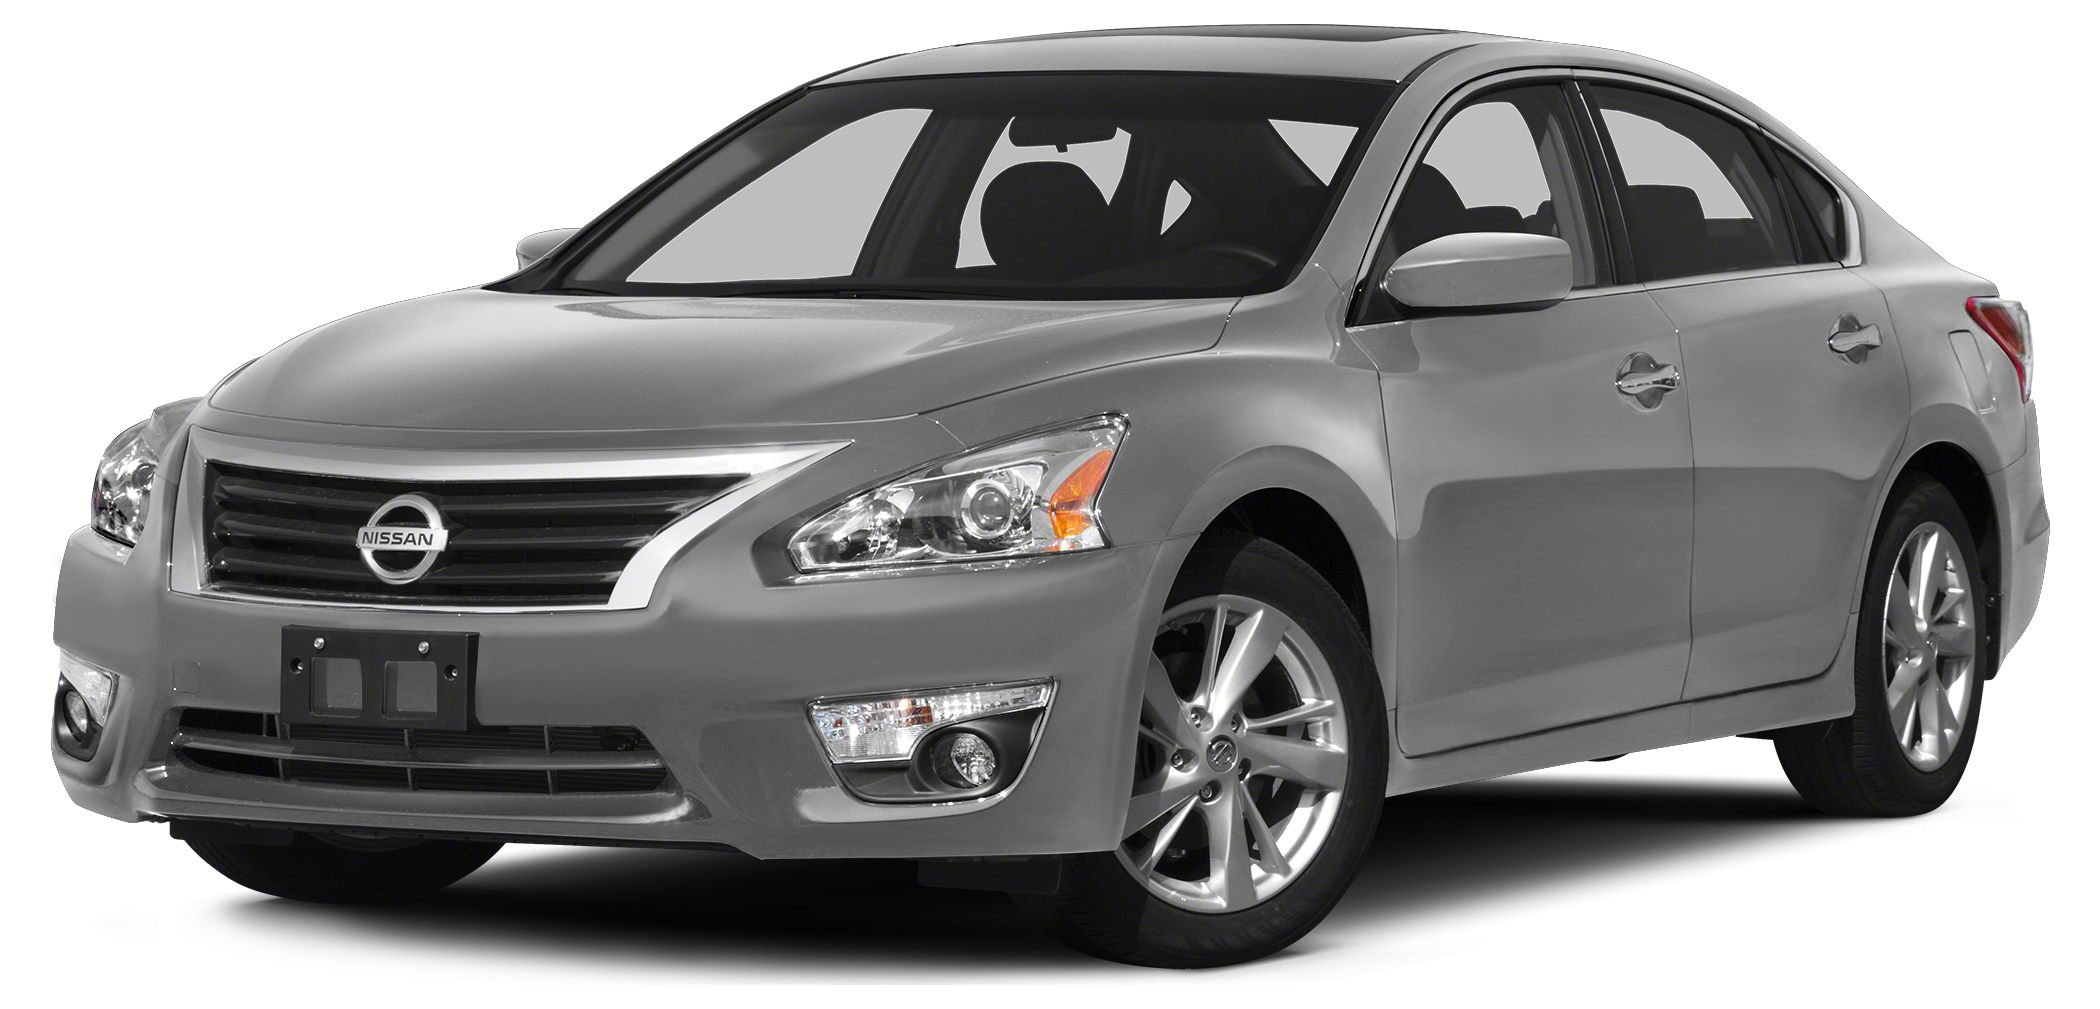 2013 Nissan Altima 25 SV 27 MPG City38 MPG Highway Altima 25 S 4D S